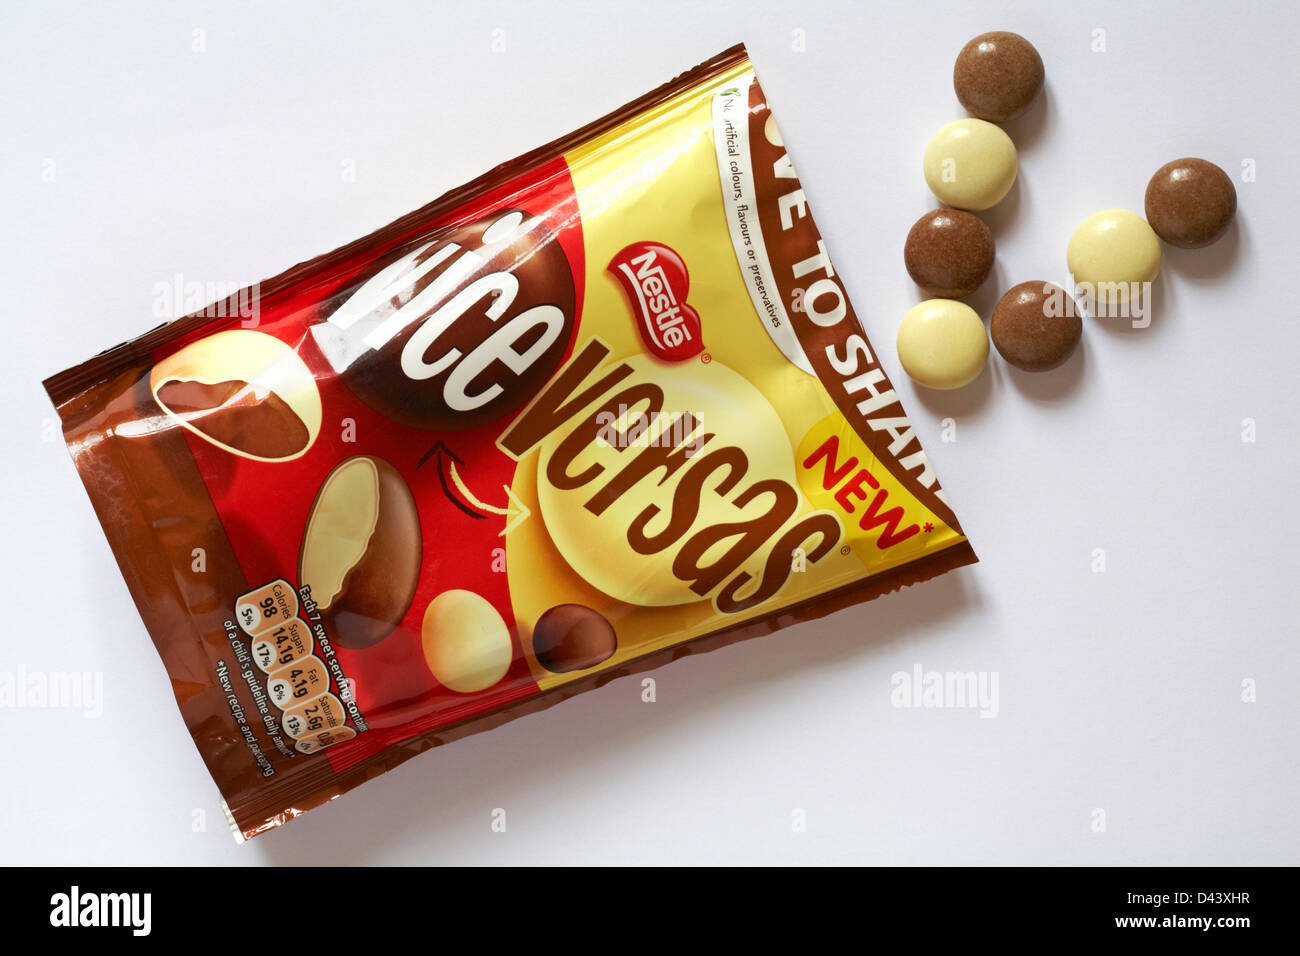 Open Packet Of Nestlé Vice Versas Chocolate Sweets With